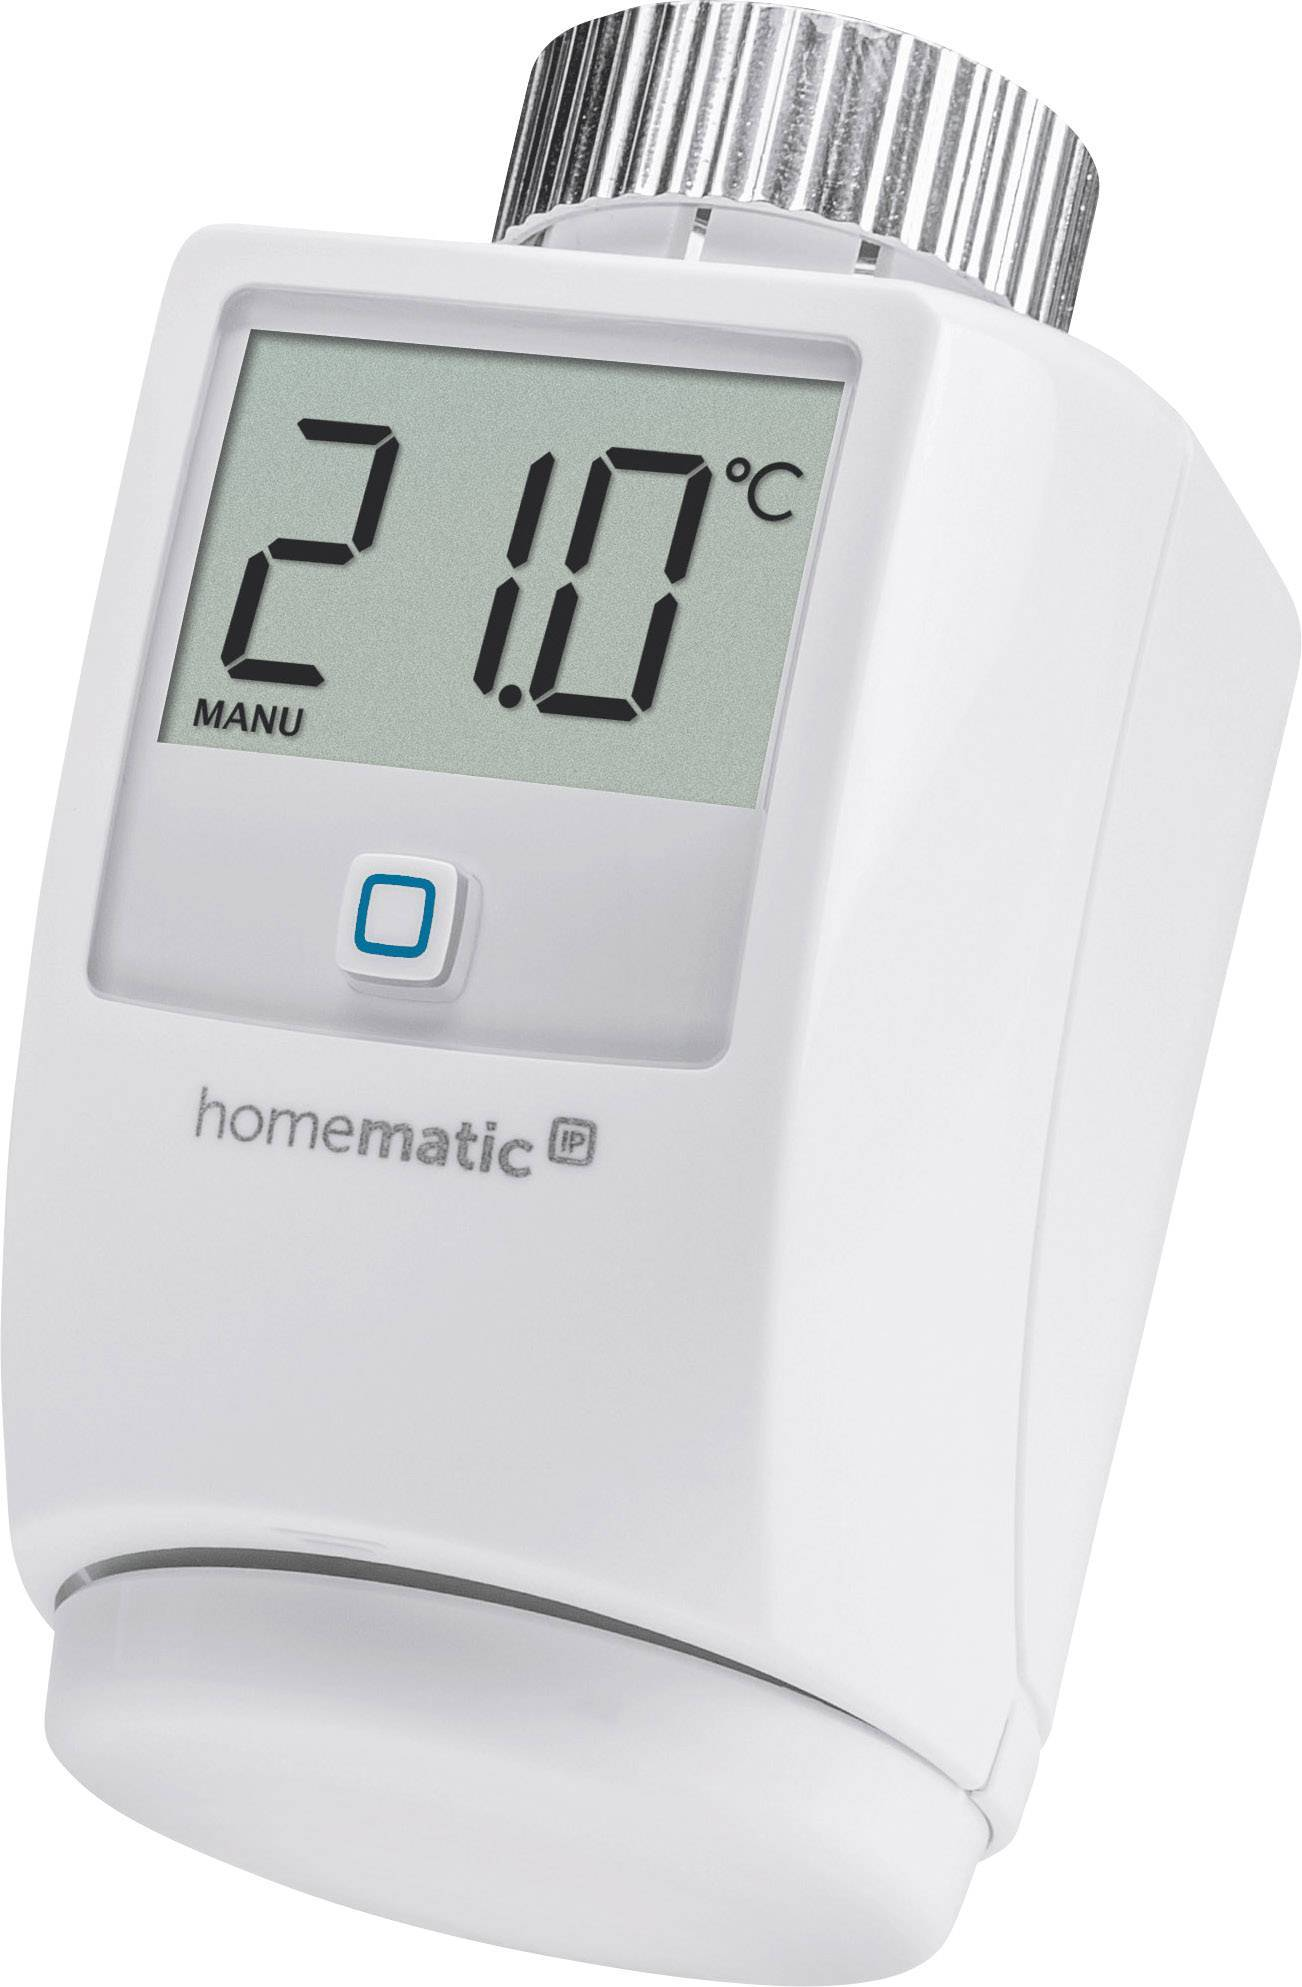 Homematic Robinet thermostatique sans fil pour radiateur - Homematic Ip